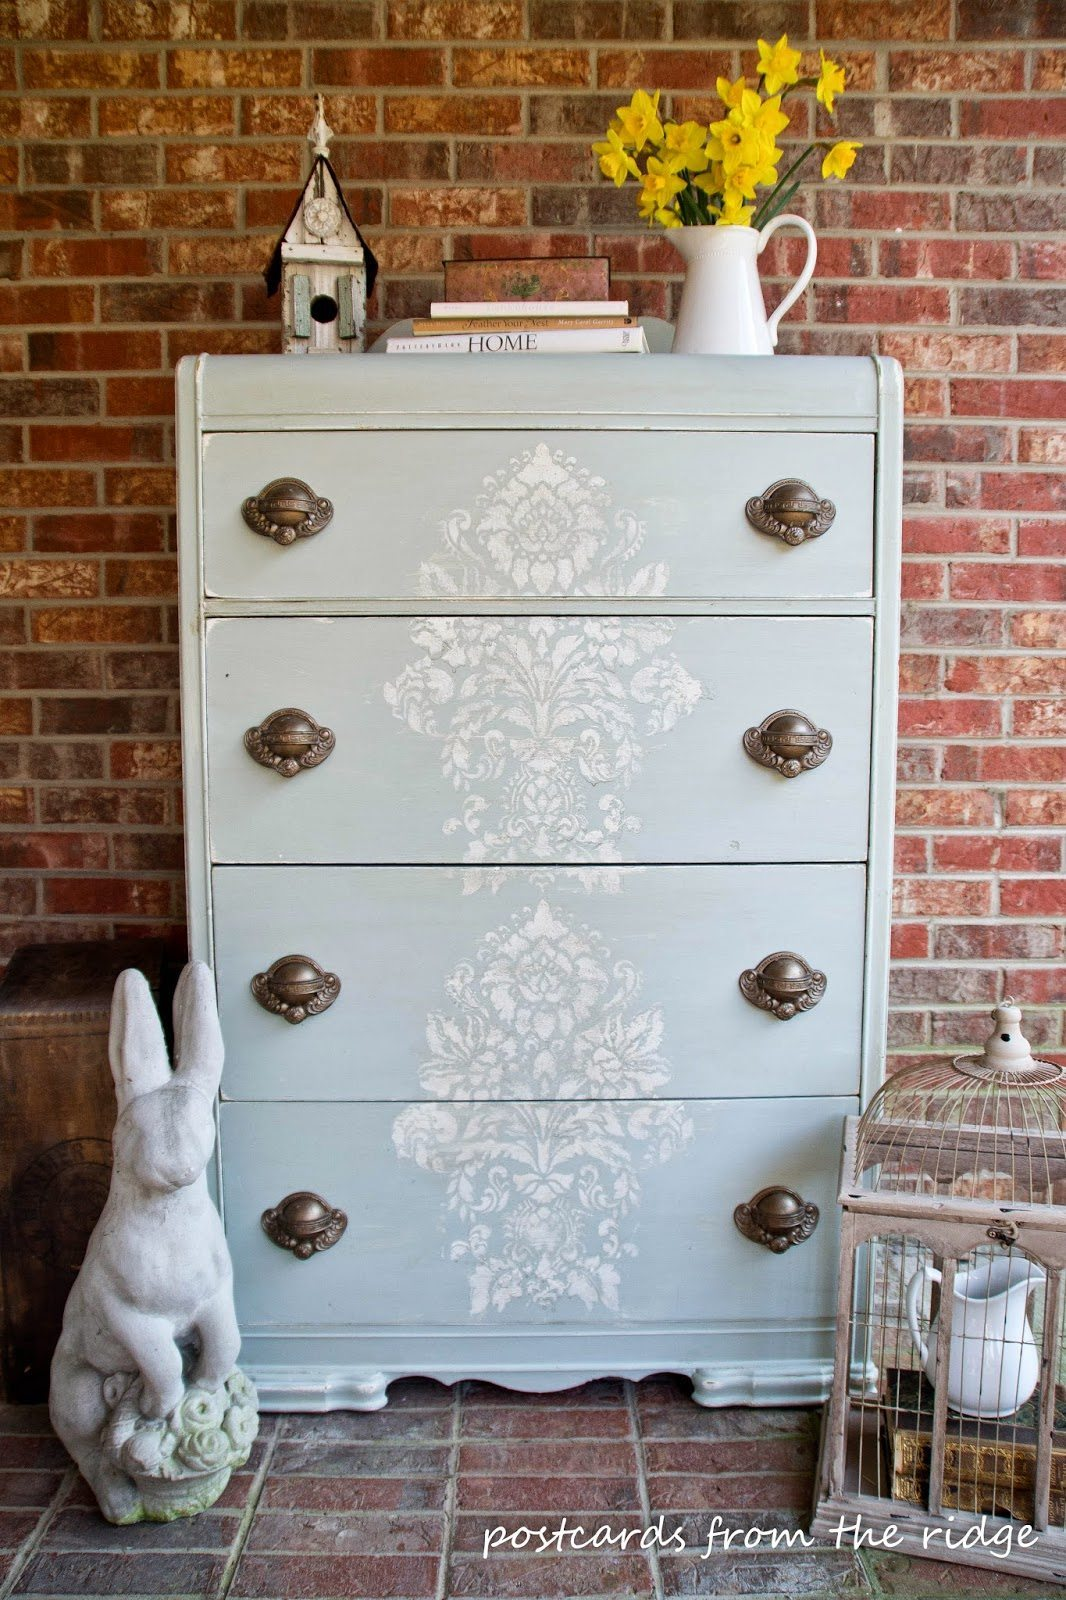 Stenciled Chest of drawers with Postcards from the Ridge